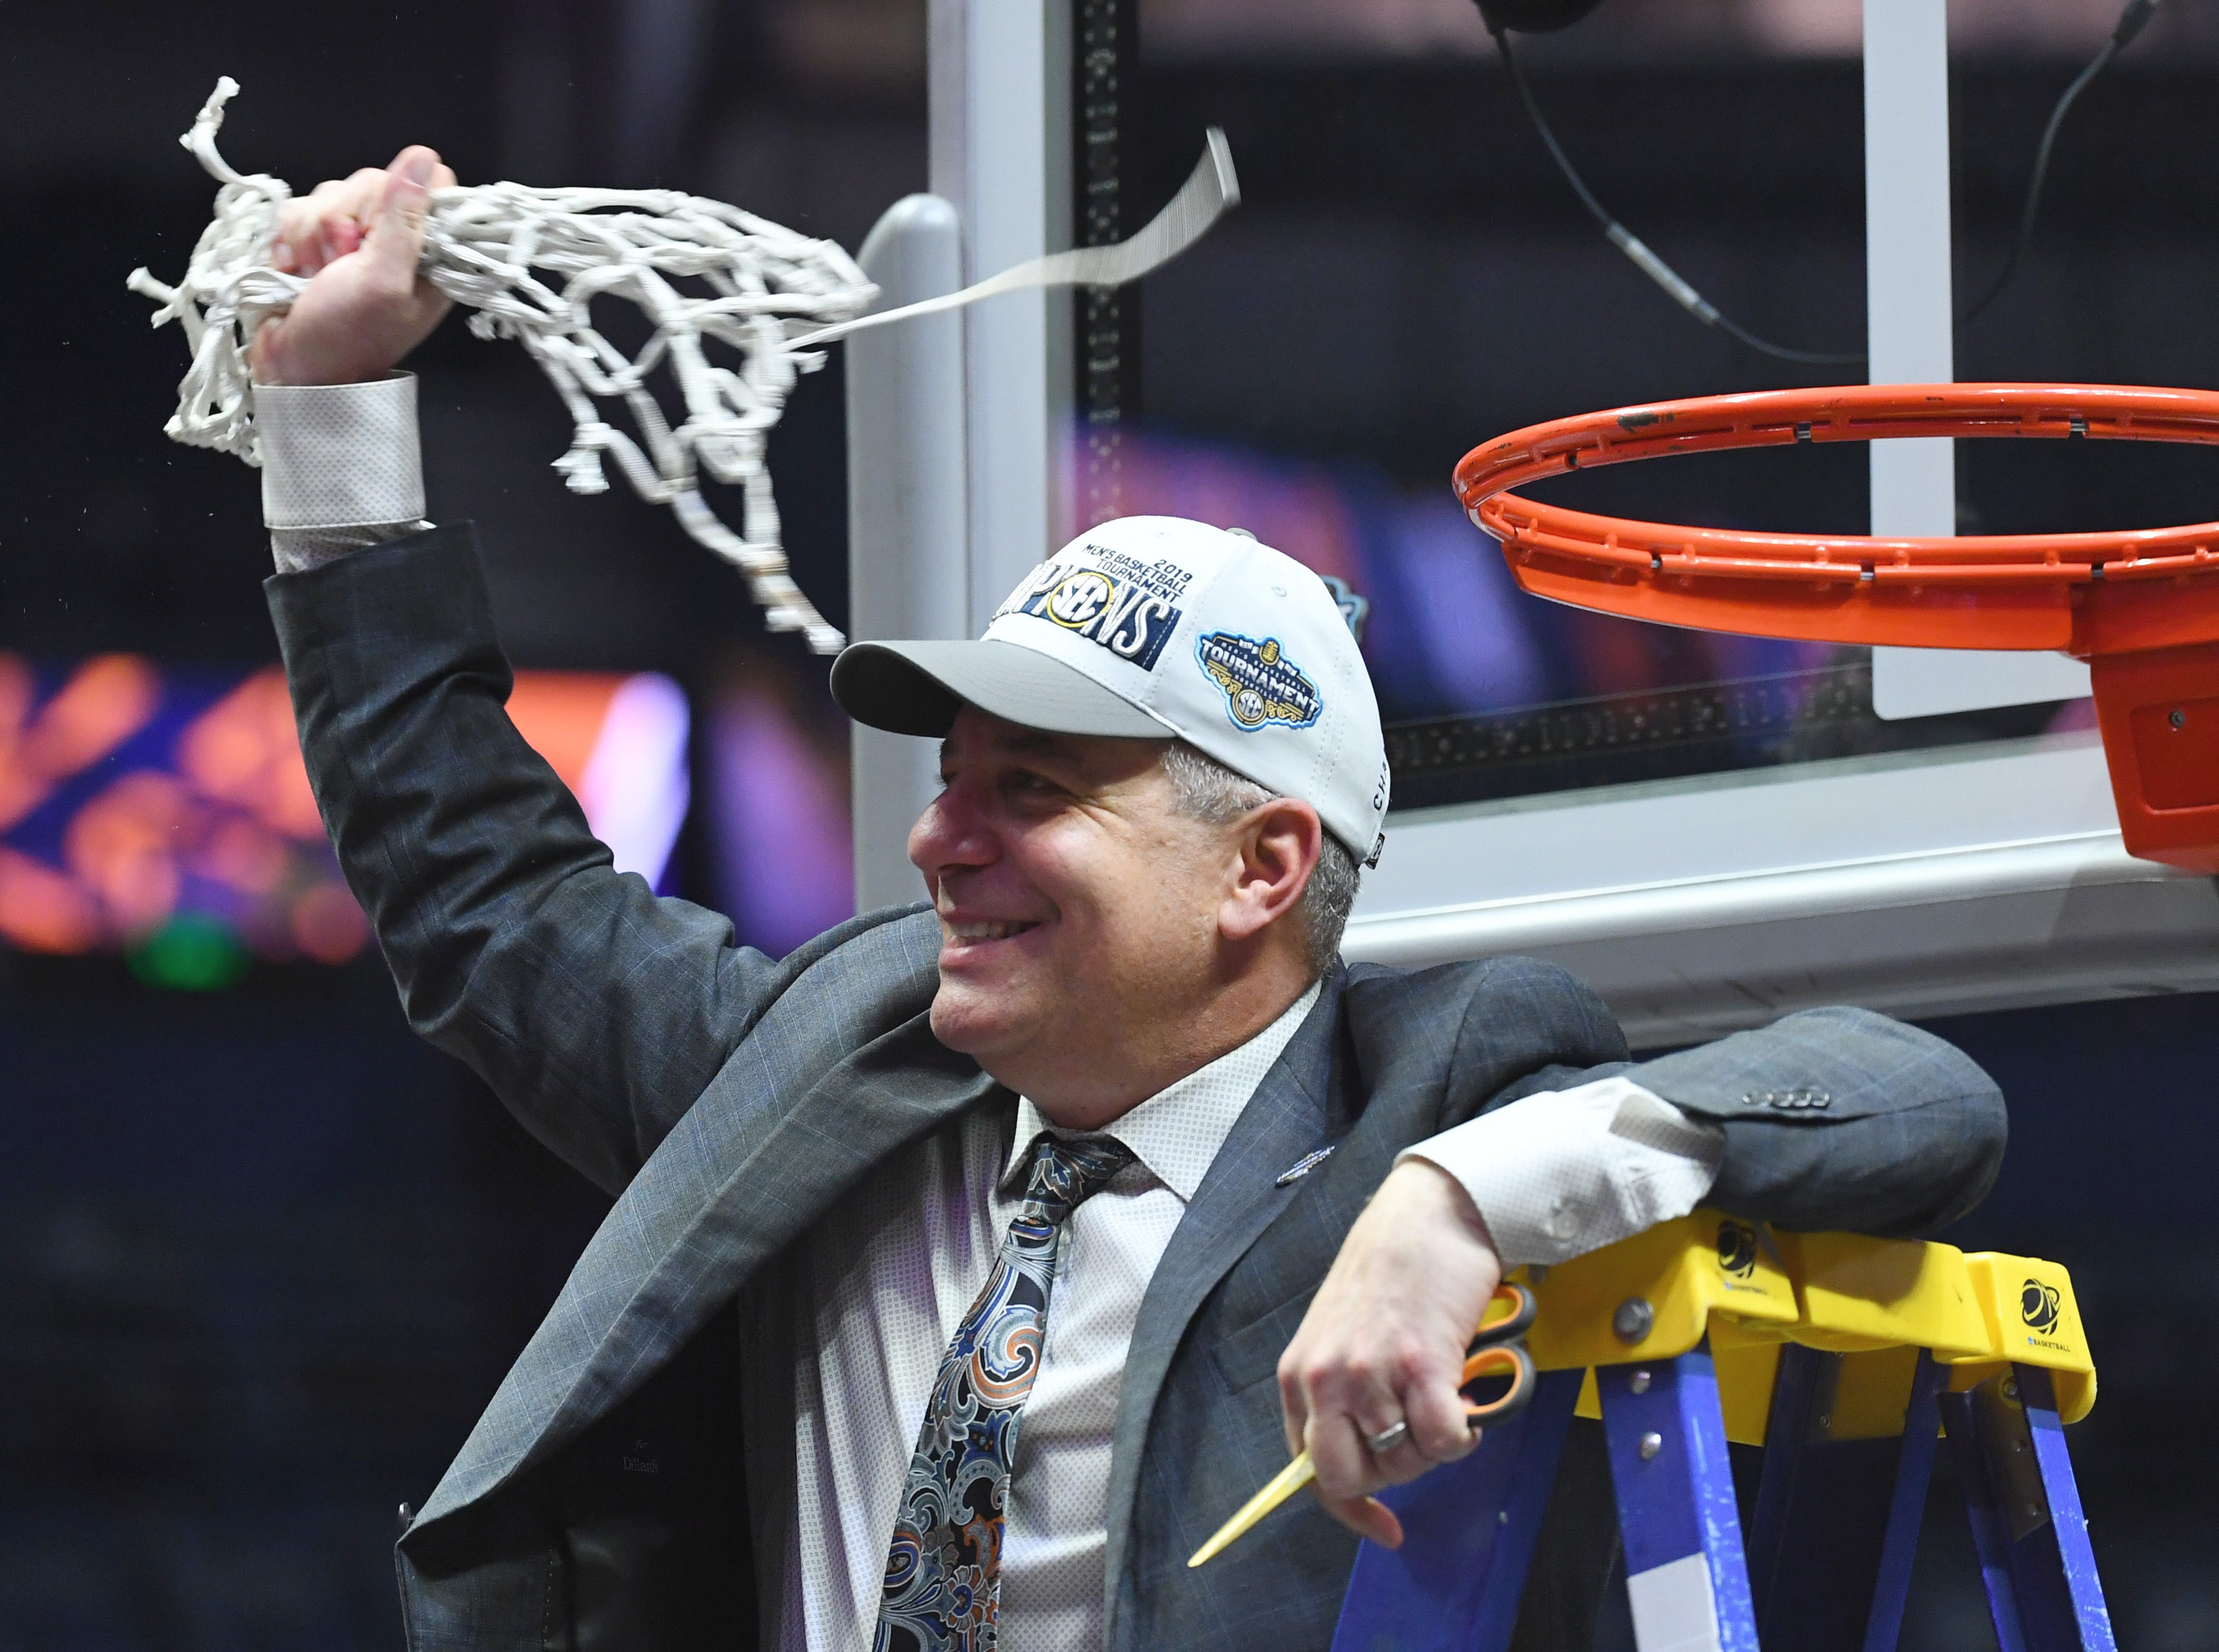 Mar 17, 2019; Nashville, TN, USA; Auburn Tigers head coach Bruce Pearl celebrates as he cuts down the nets after beating the Tennessee Volunteers in the SEC conference tournament championship game at Bridgestone Arena. Mandatory Credit: Christopher Hanewinckel-USA TODAY Sports